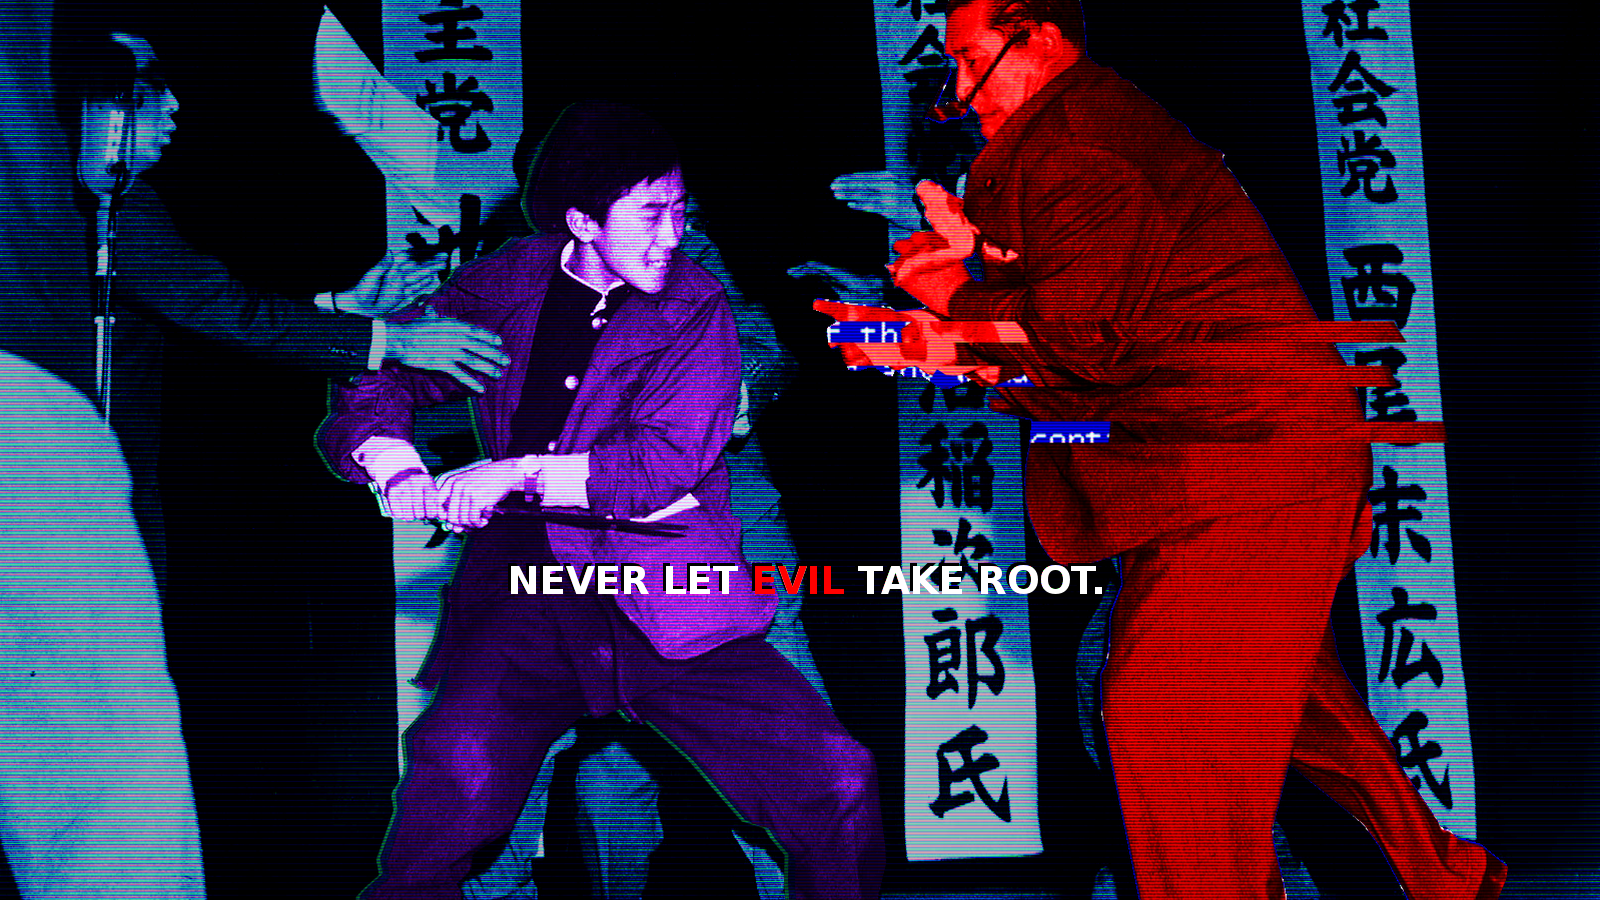 Never let evil take root fashwave jap commie attack